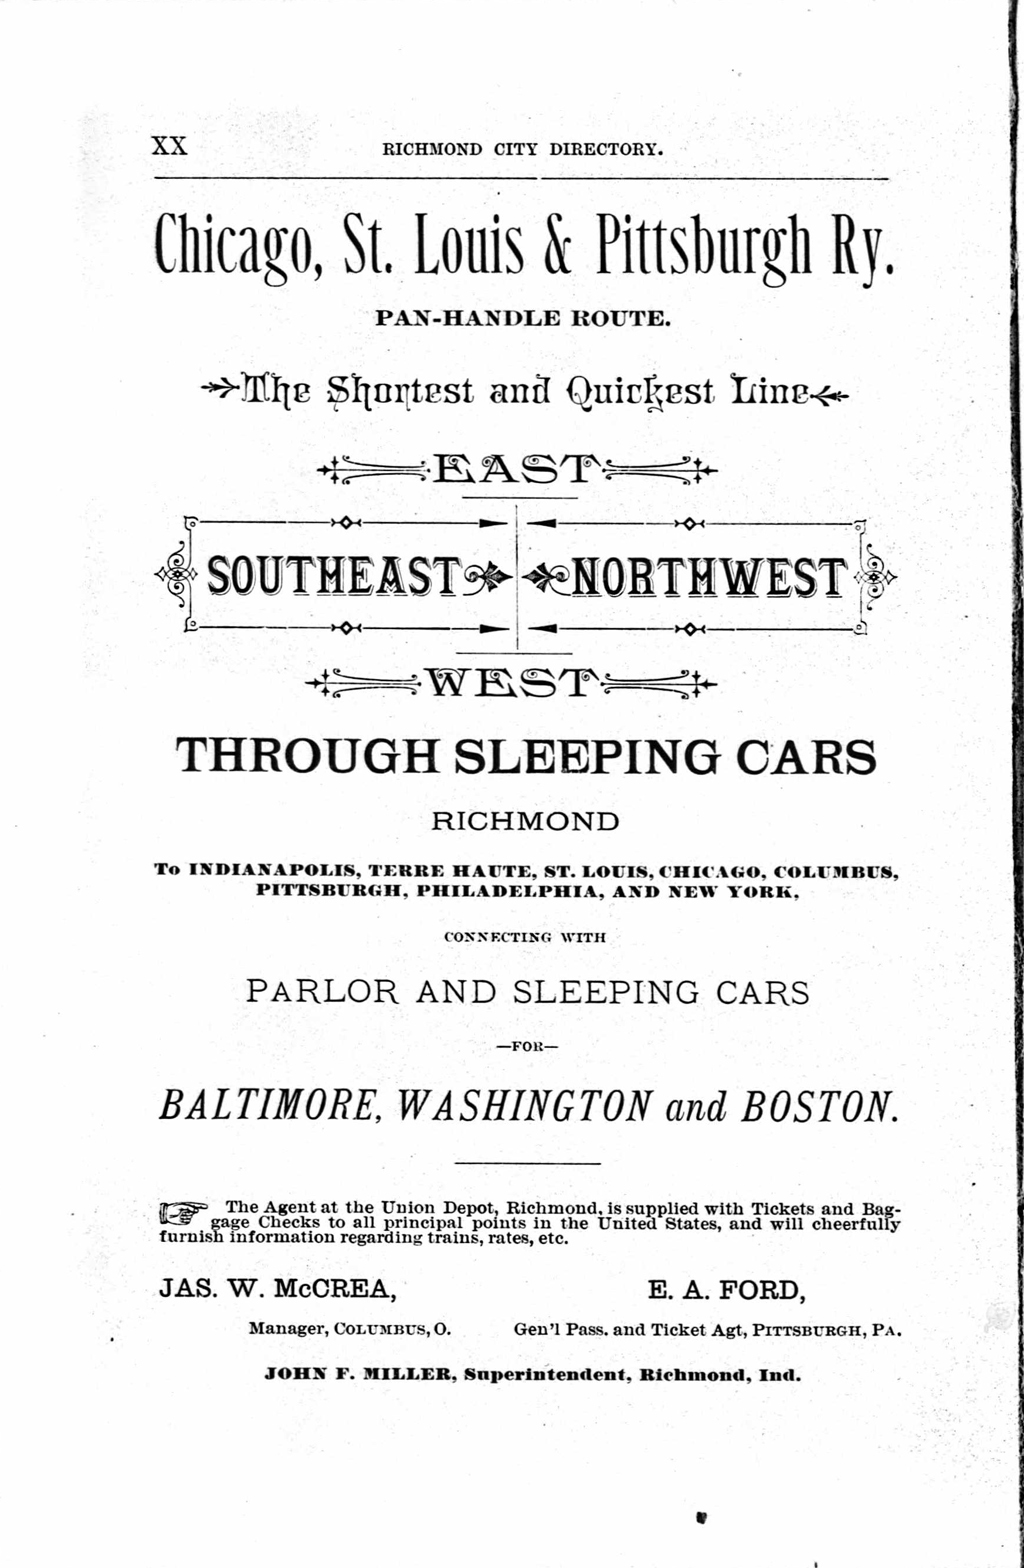 Advertisement for the Chicago, St. Louis & Pittsburgh Railway (the Panhandle Route) (1883). From City Directory of Richmond, Wayne Co., Ind. 1883–84 (Richmond, Indiana: M. Cullaton & Co., 1883).